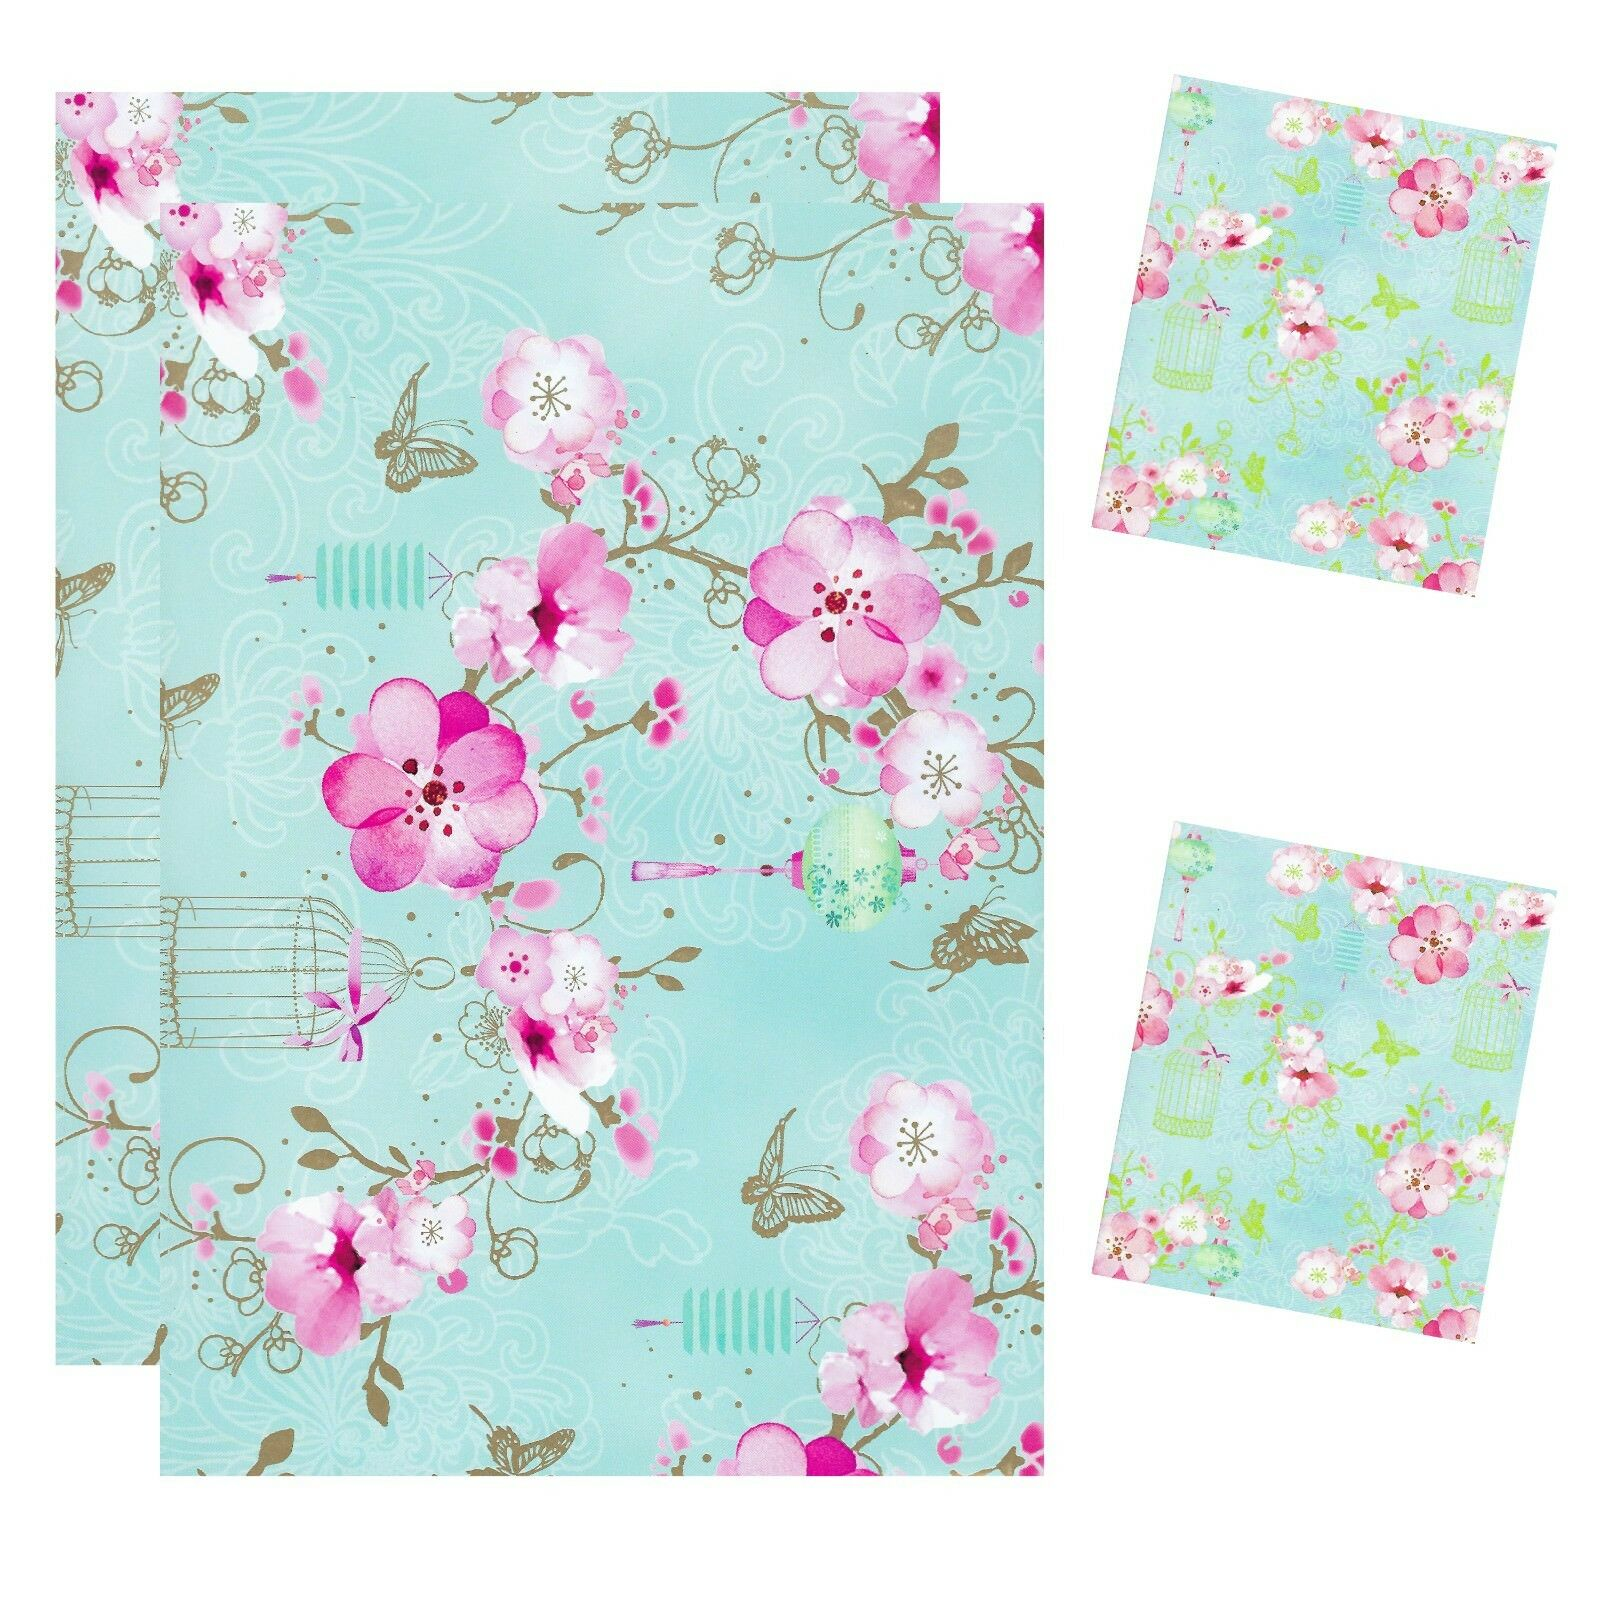 Simon Elvin 2 Sheets Gift Wrapping Paper 2 Tags 50cm X 70cm Jade